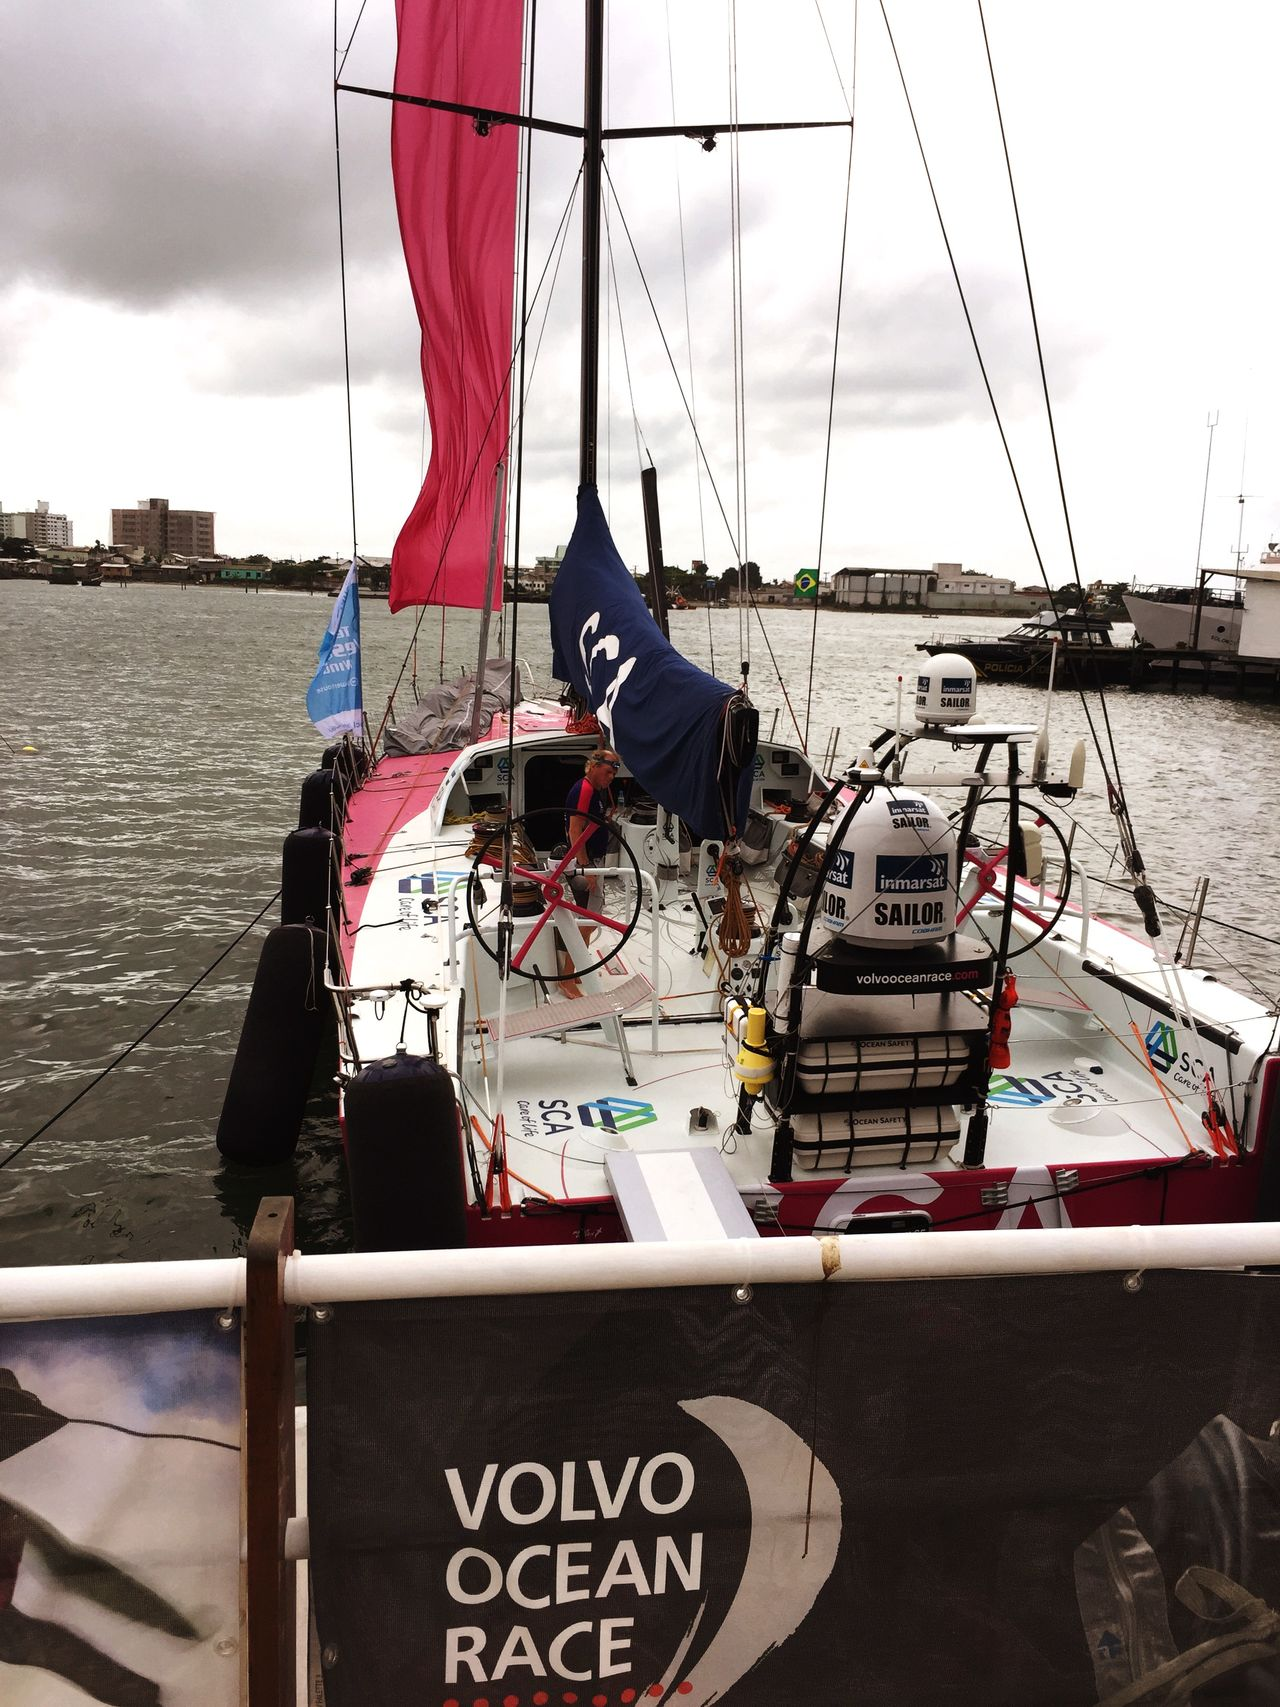 Volvo Ocean Race Team_SCA TeamSCA Itajaí Sailing Race Sports Photography Regata Vor TEAMGAW